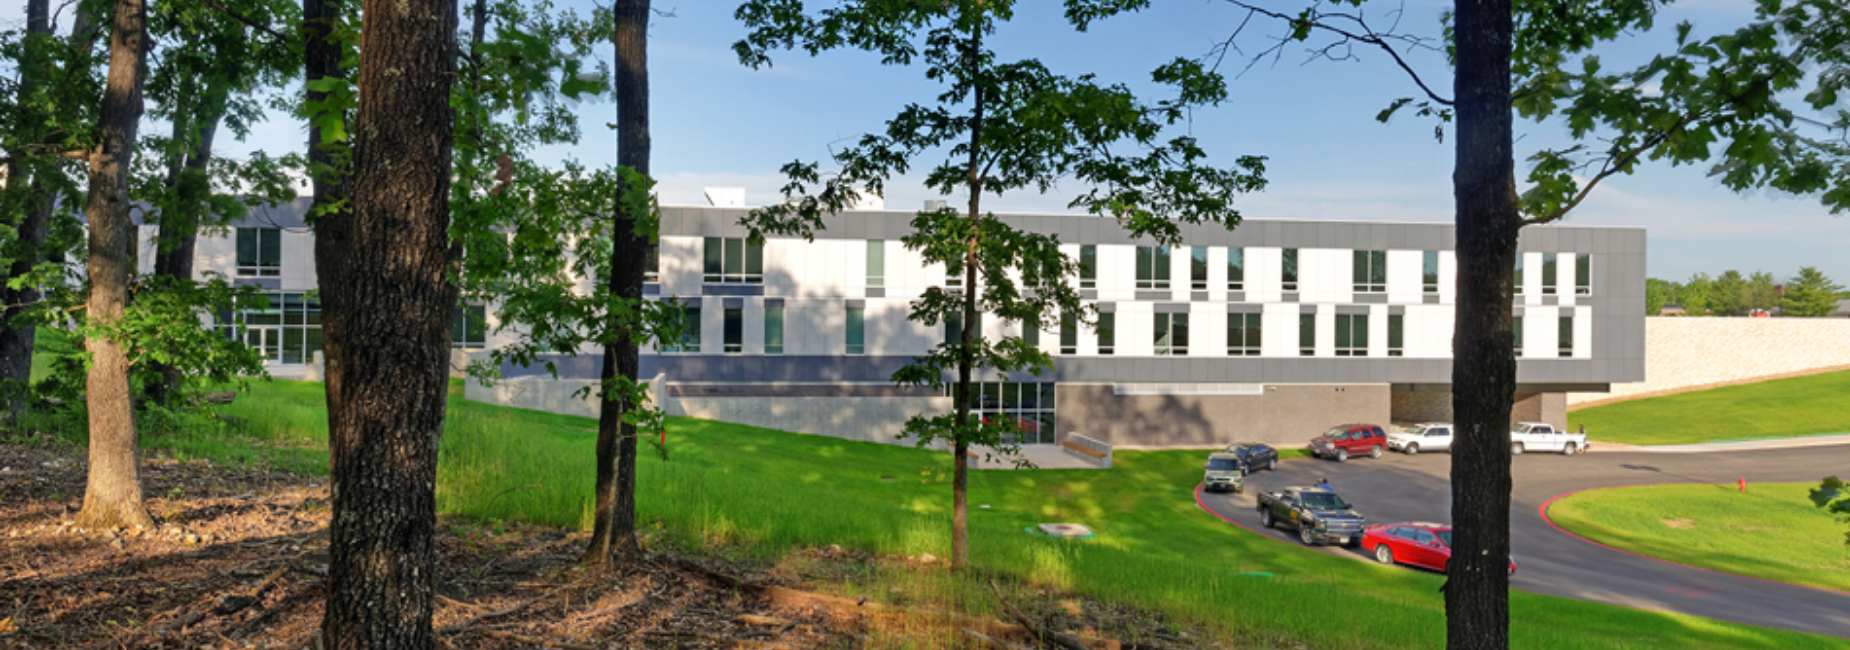 Reeds Spring Middle School Exterior